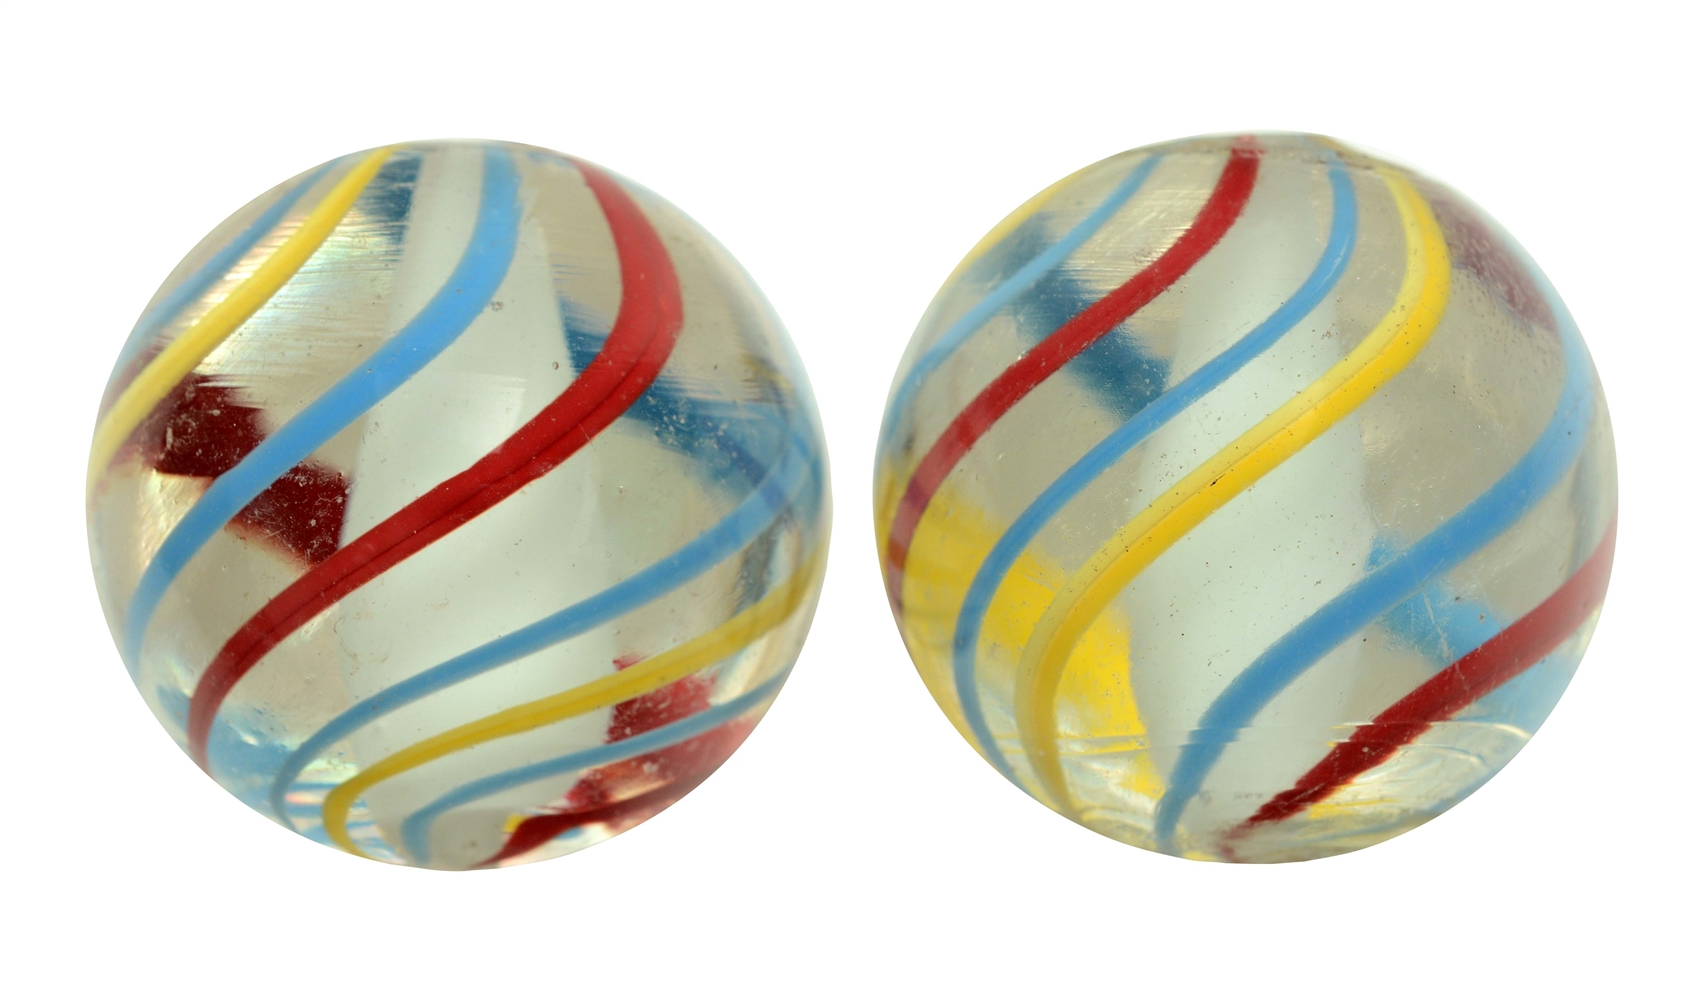 Lot of 2: Same Cane Solid White Core Marbles.